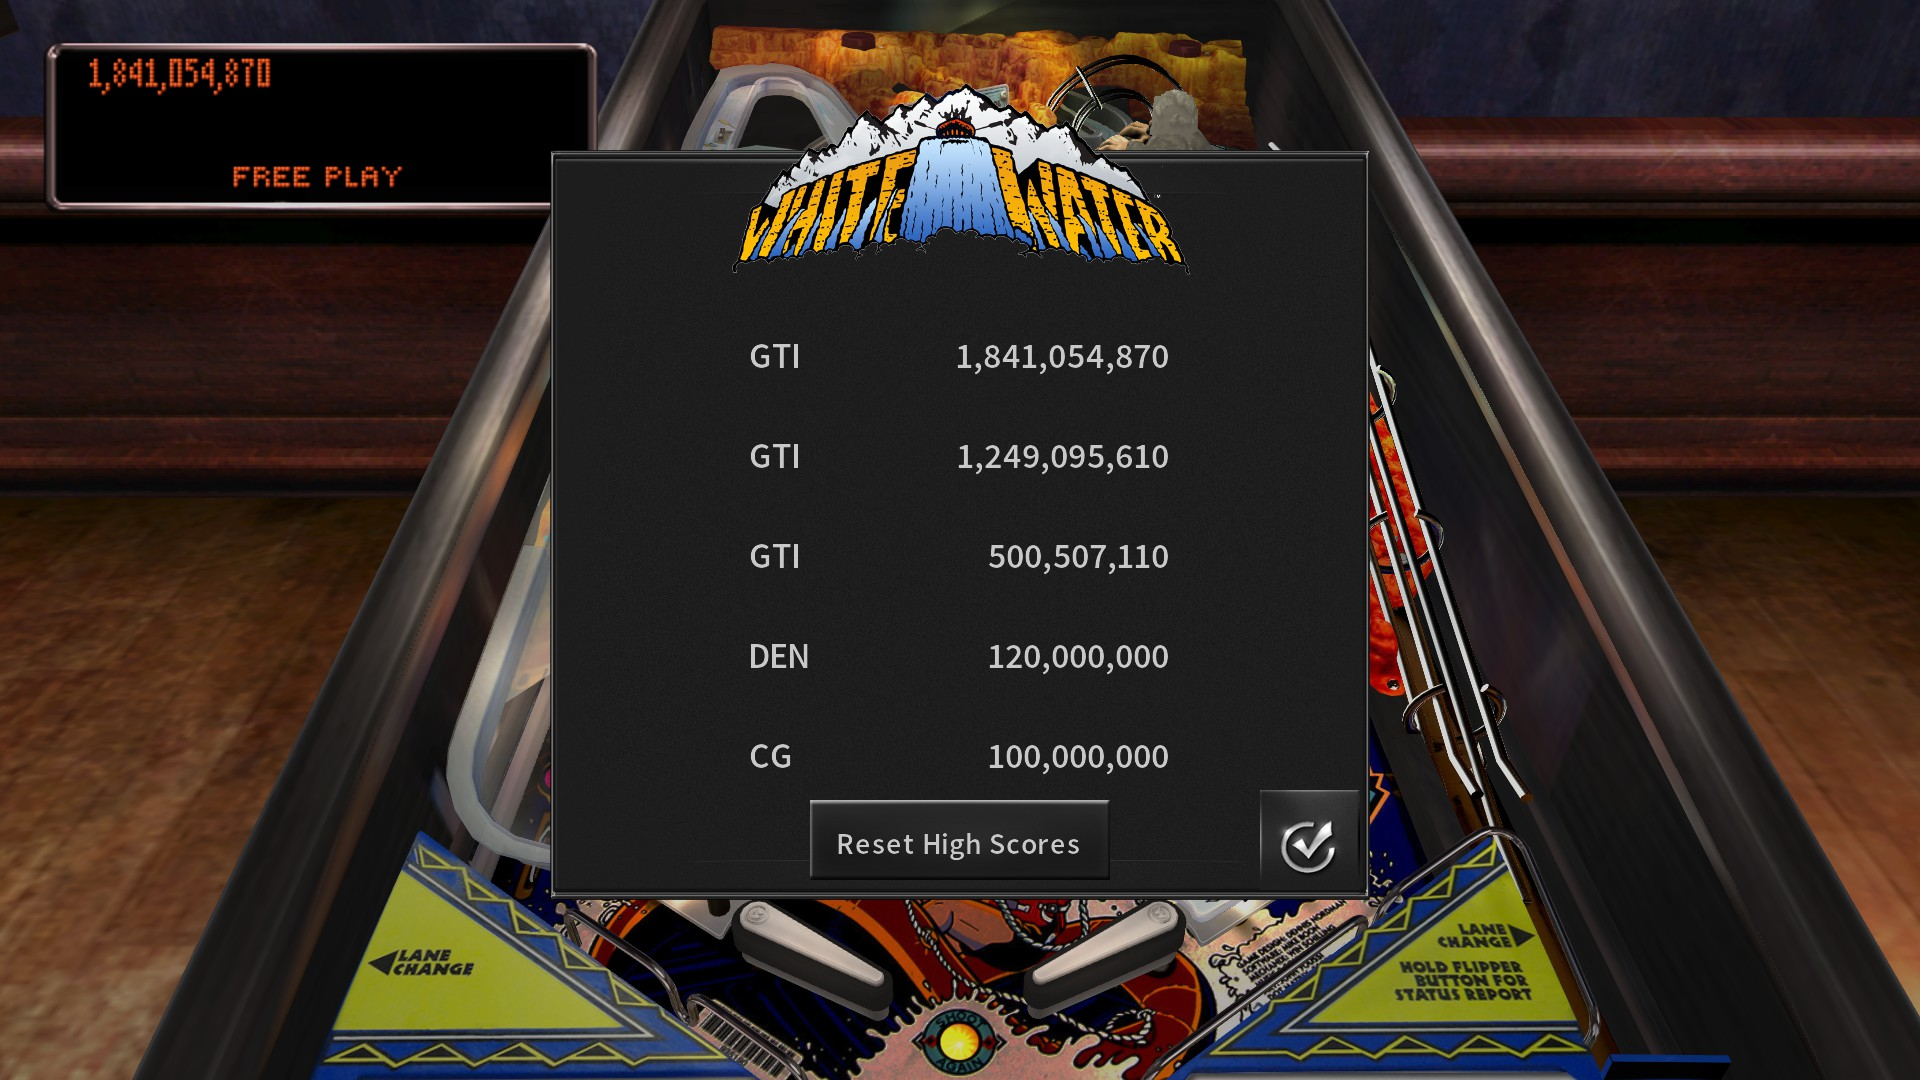 GTibel: Pinball Arcade: White Water (PC) 1,841,054,870 points on 2017-11-09 01:38:30